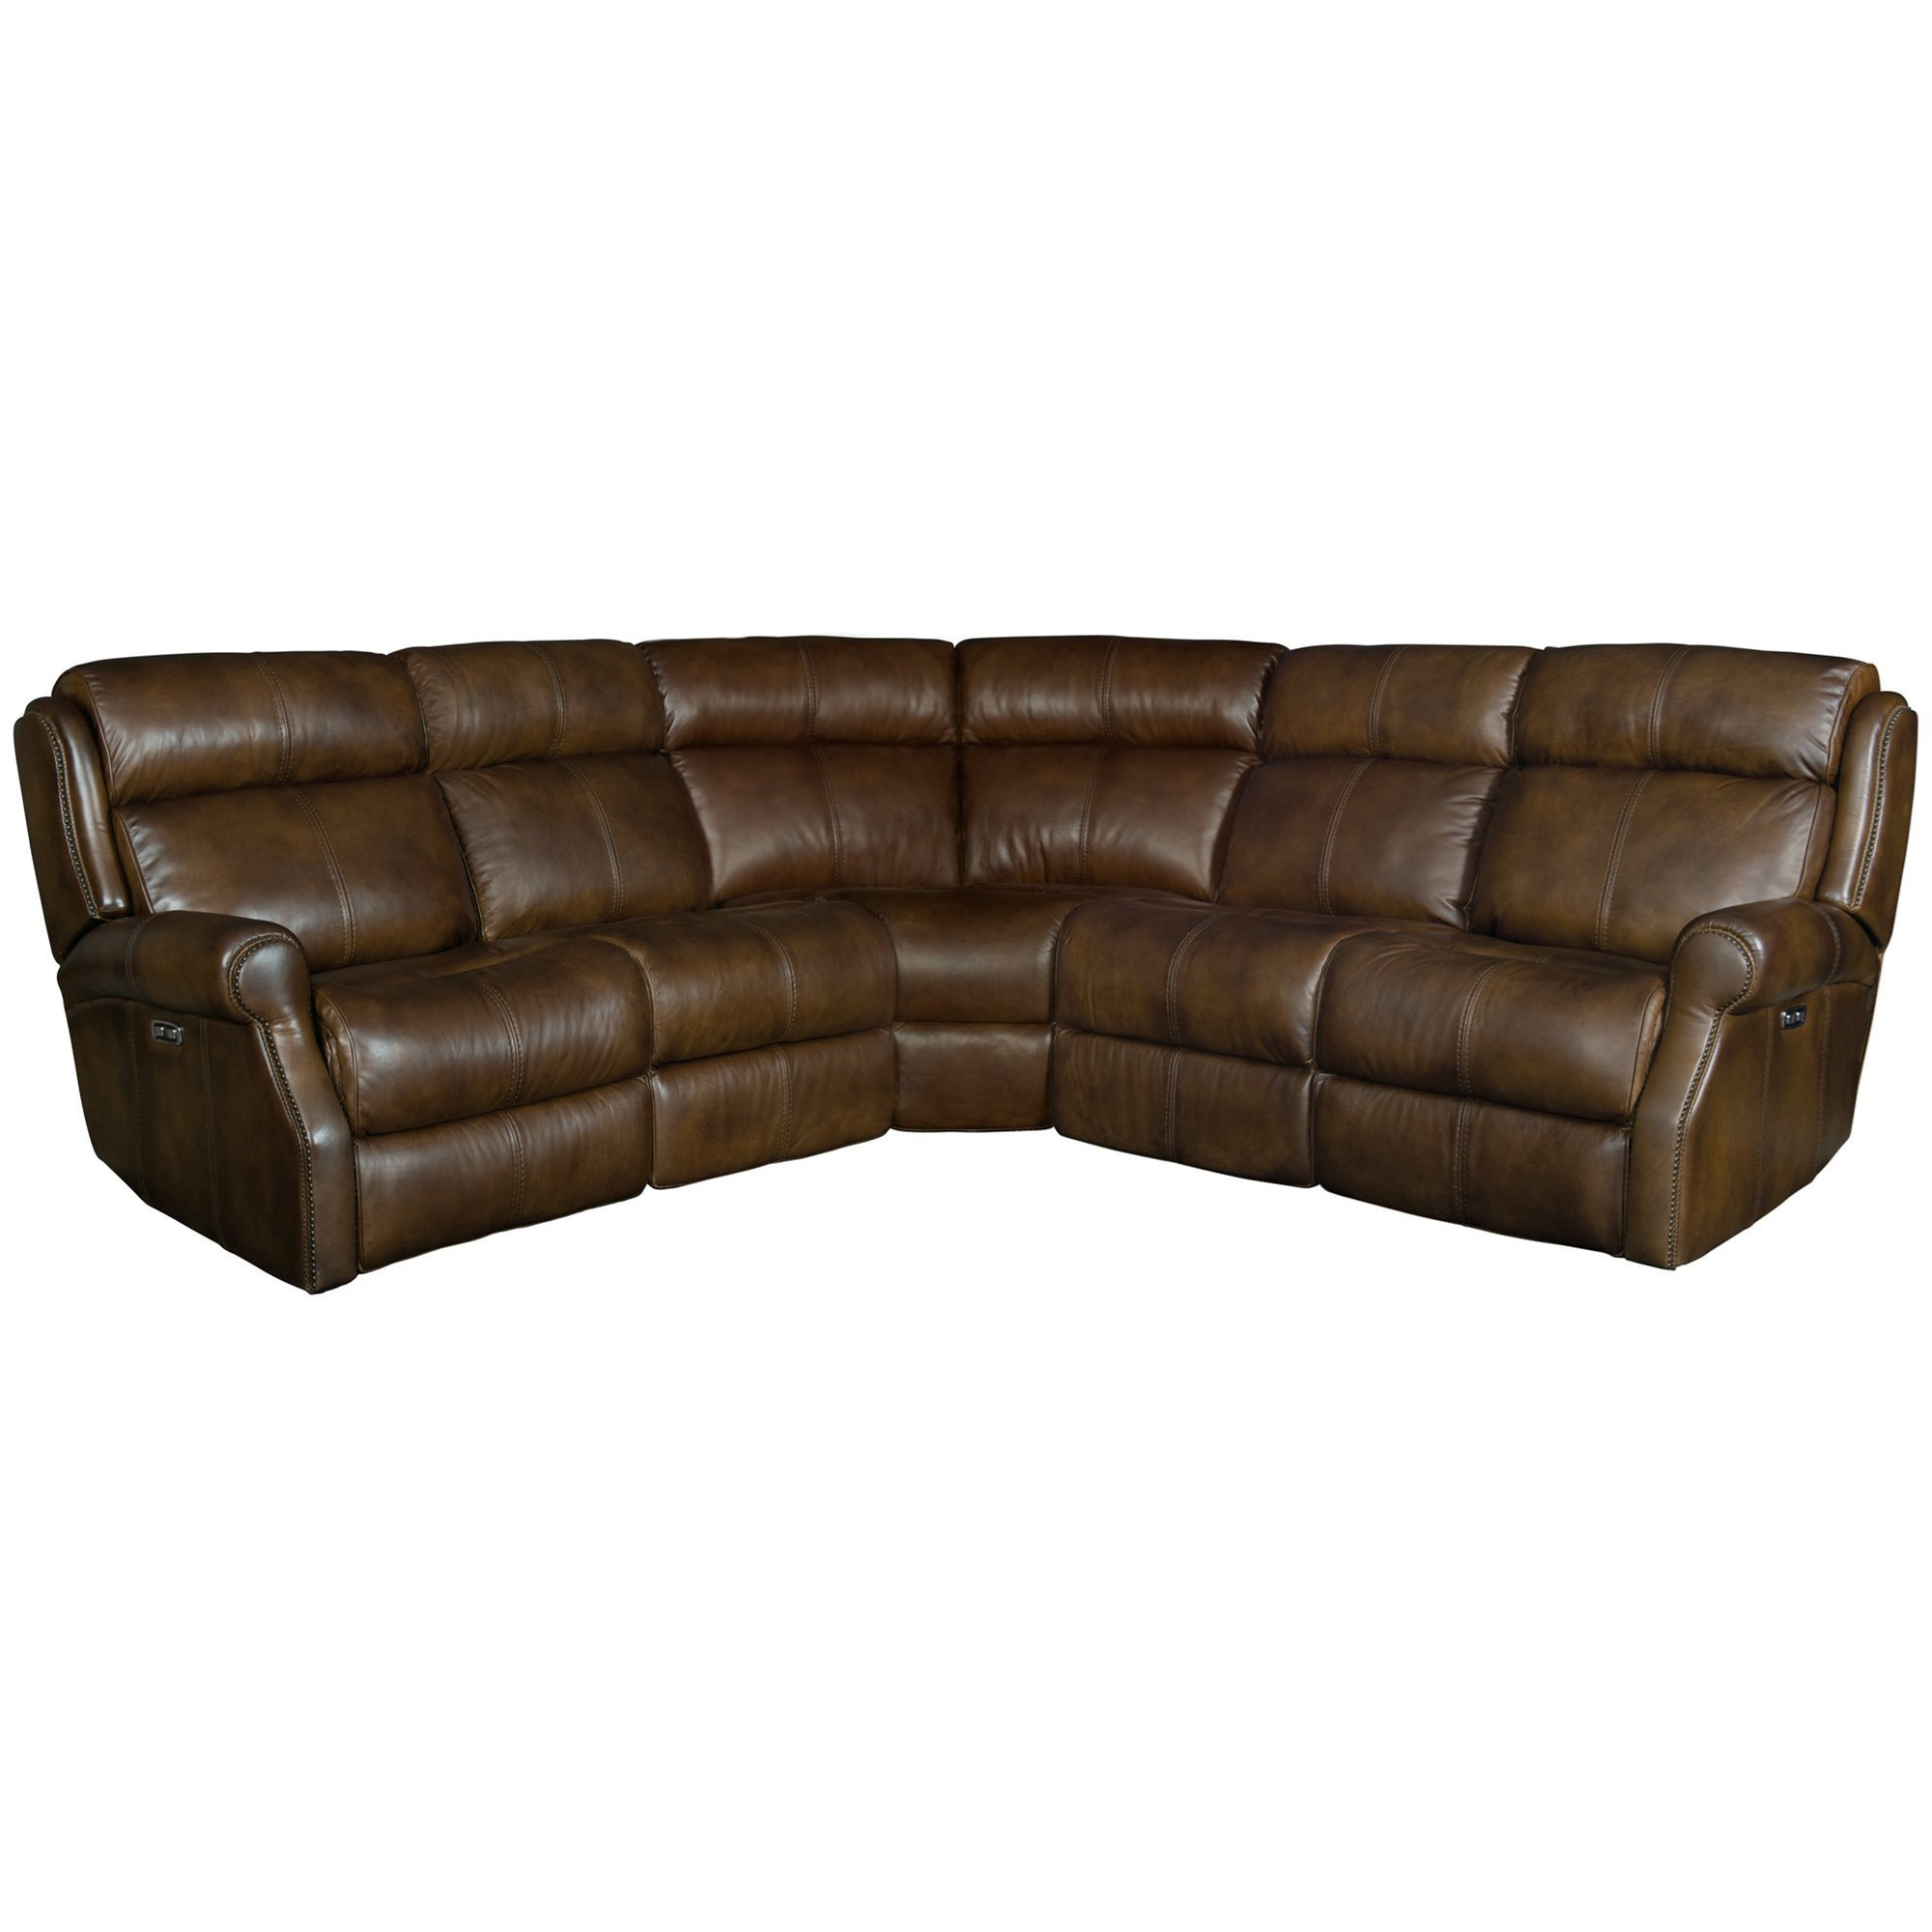 Leather Sectional Sofa Recliner Mcgwire Three Piece Power Reclining Leather Sectional Sofa With Power Tilt Headrests And Usb Charging Ports By Bernhardt At Dunk Bright Furniture